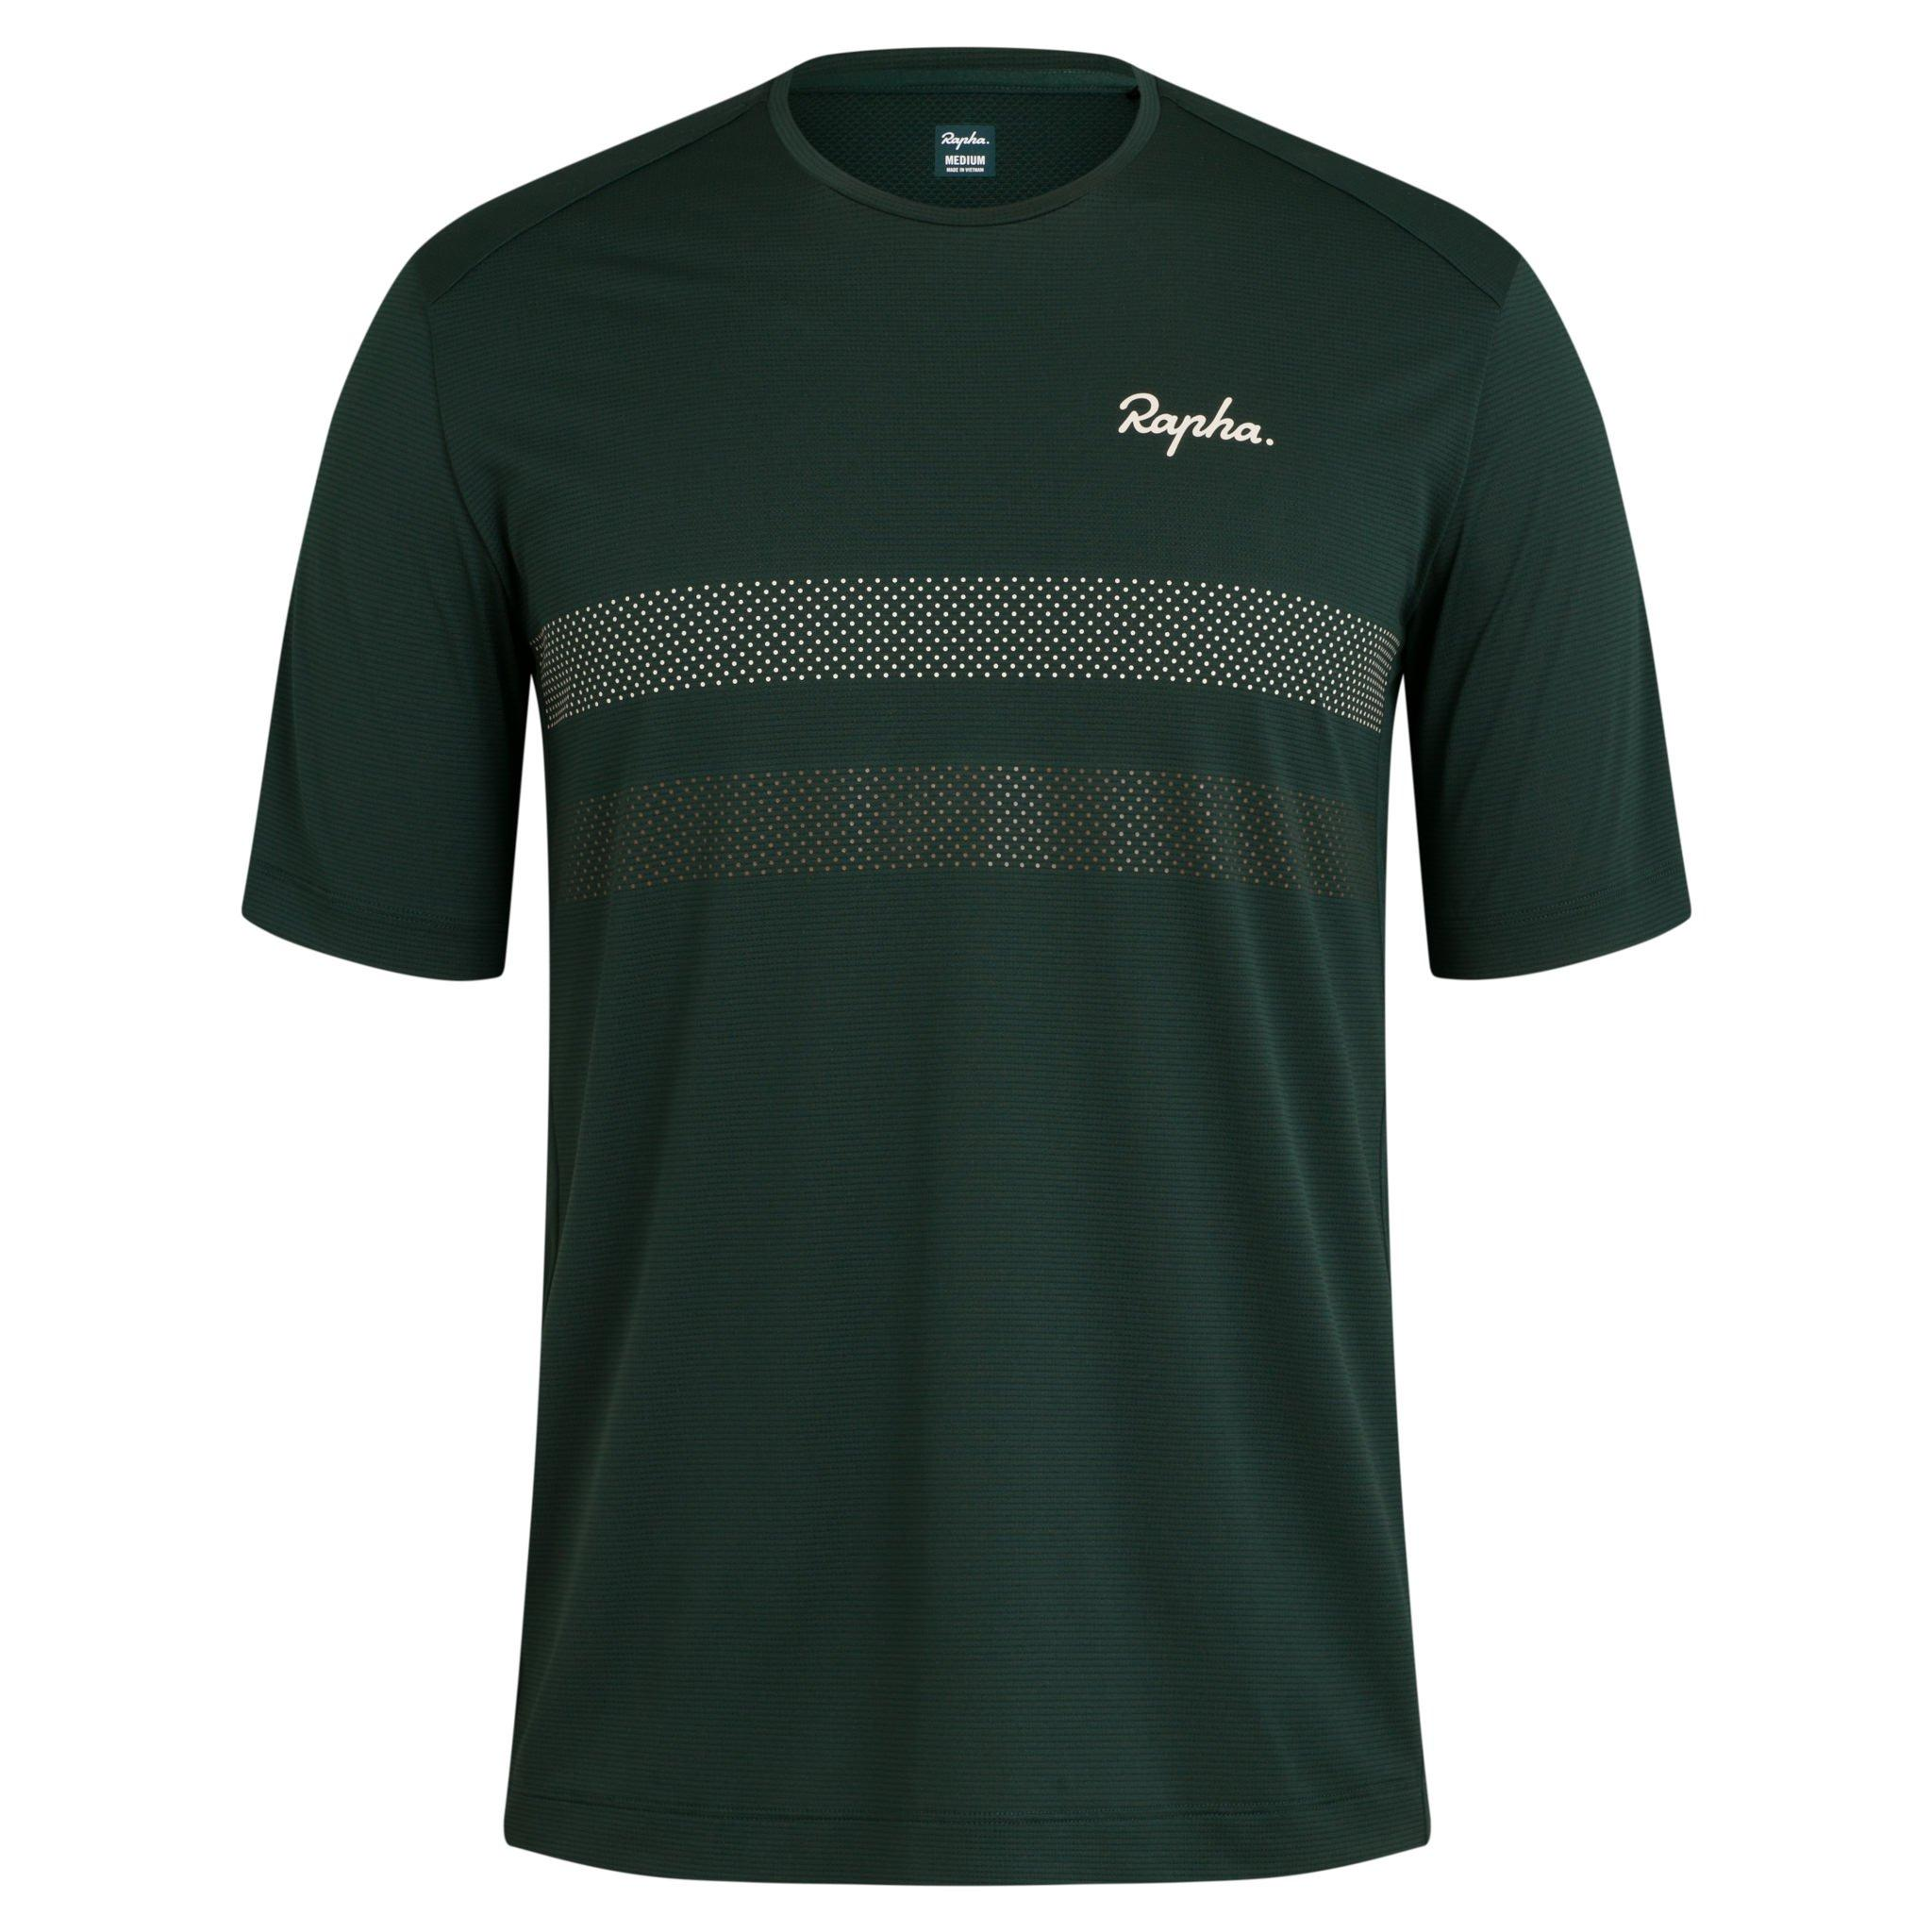 TEE SHIRT RAPHA TECHNICAL EXPLORE VERT FONCE